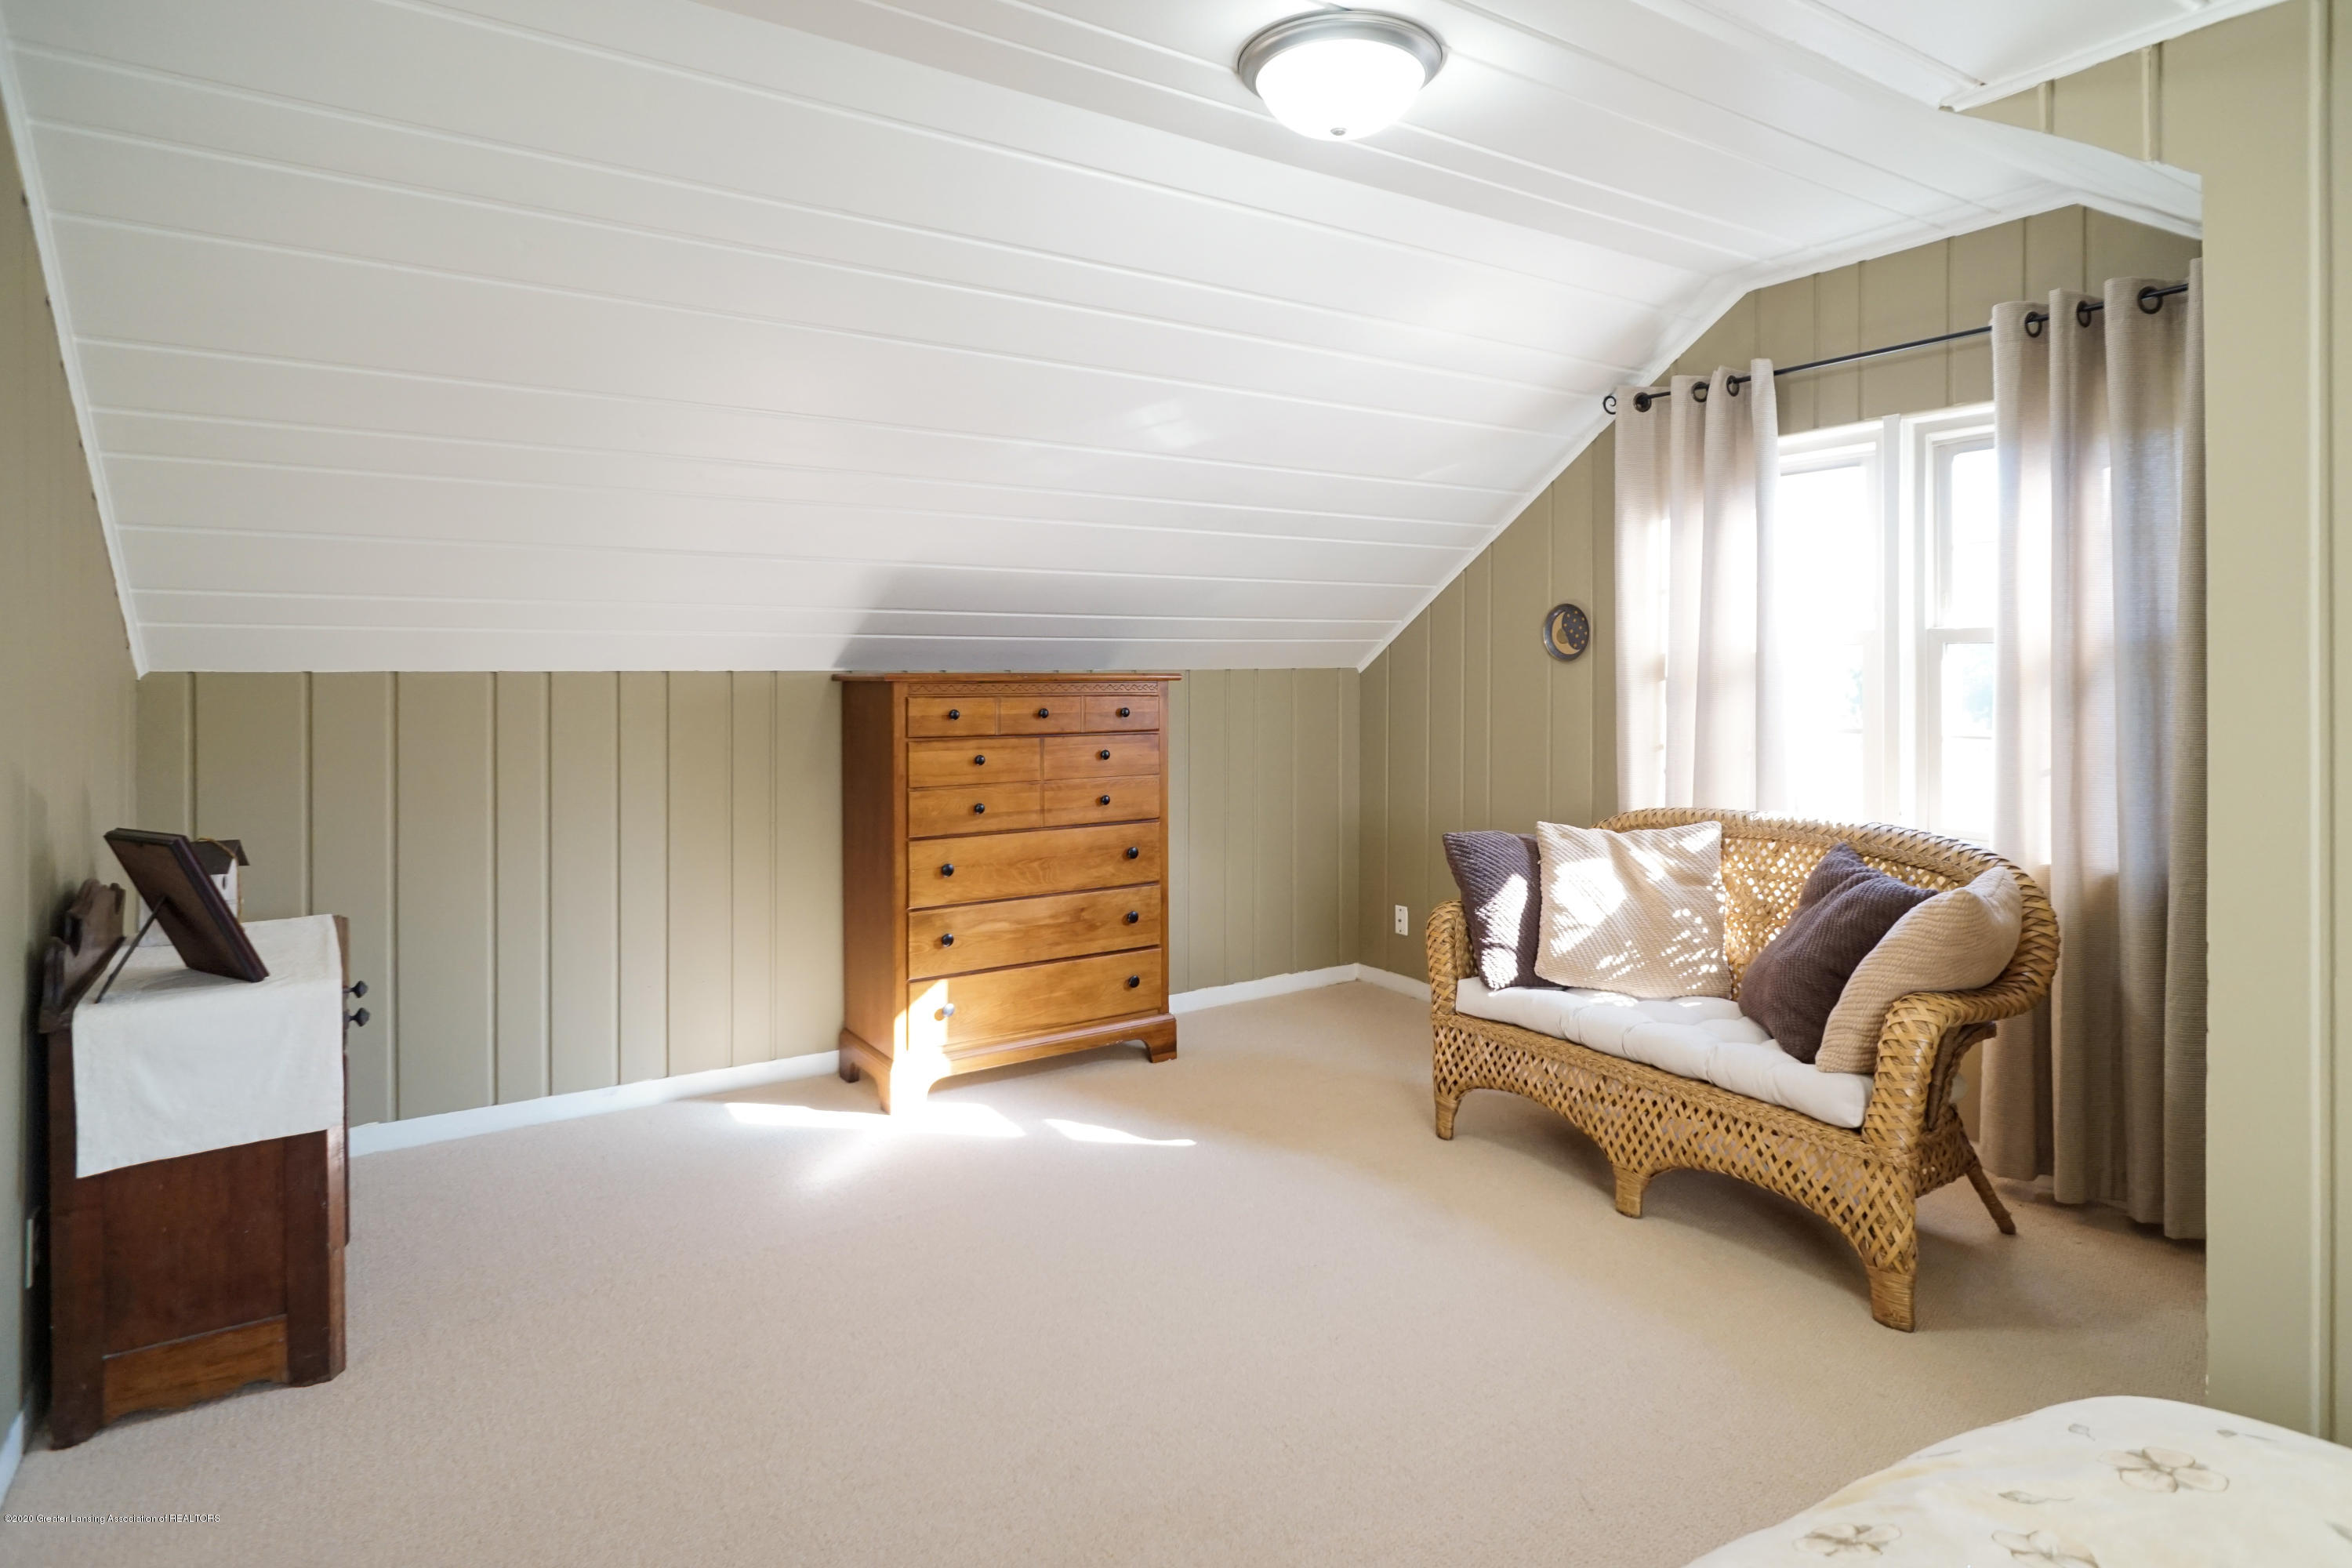 614 Whitehills Dr - Wood-lined walls & ceiling - 44